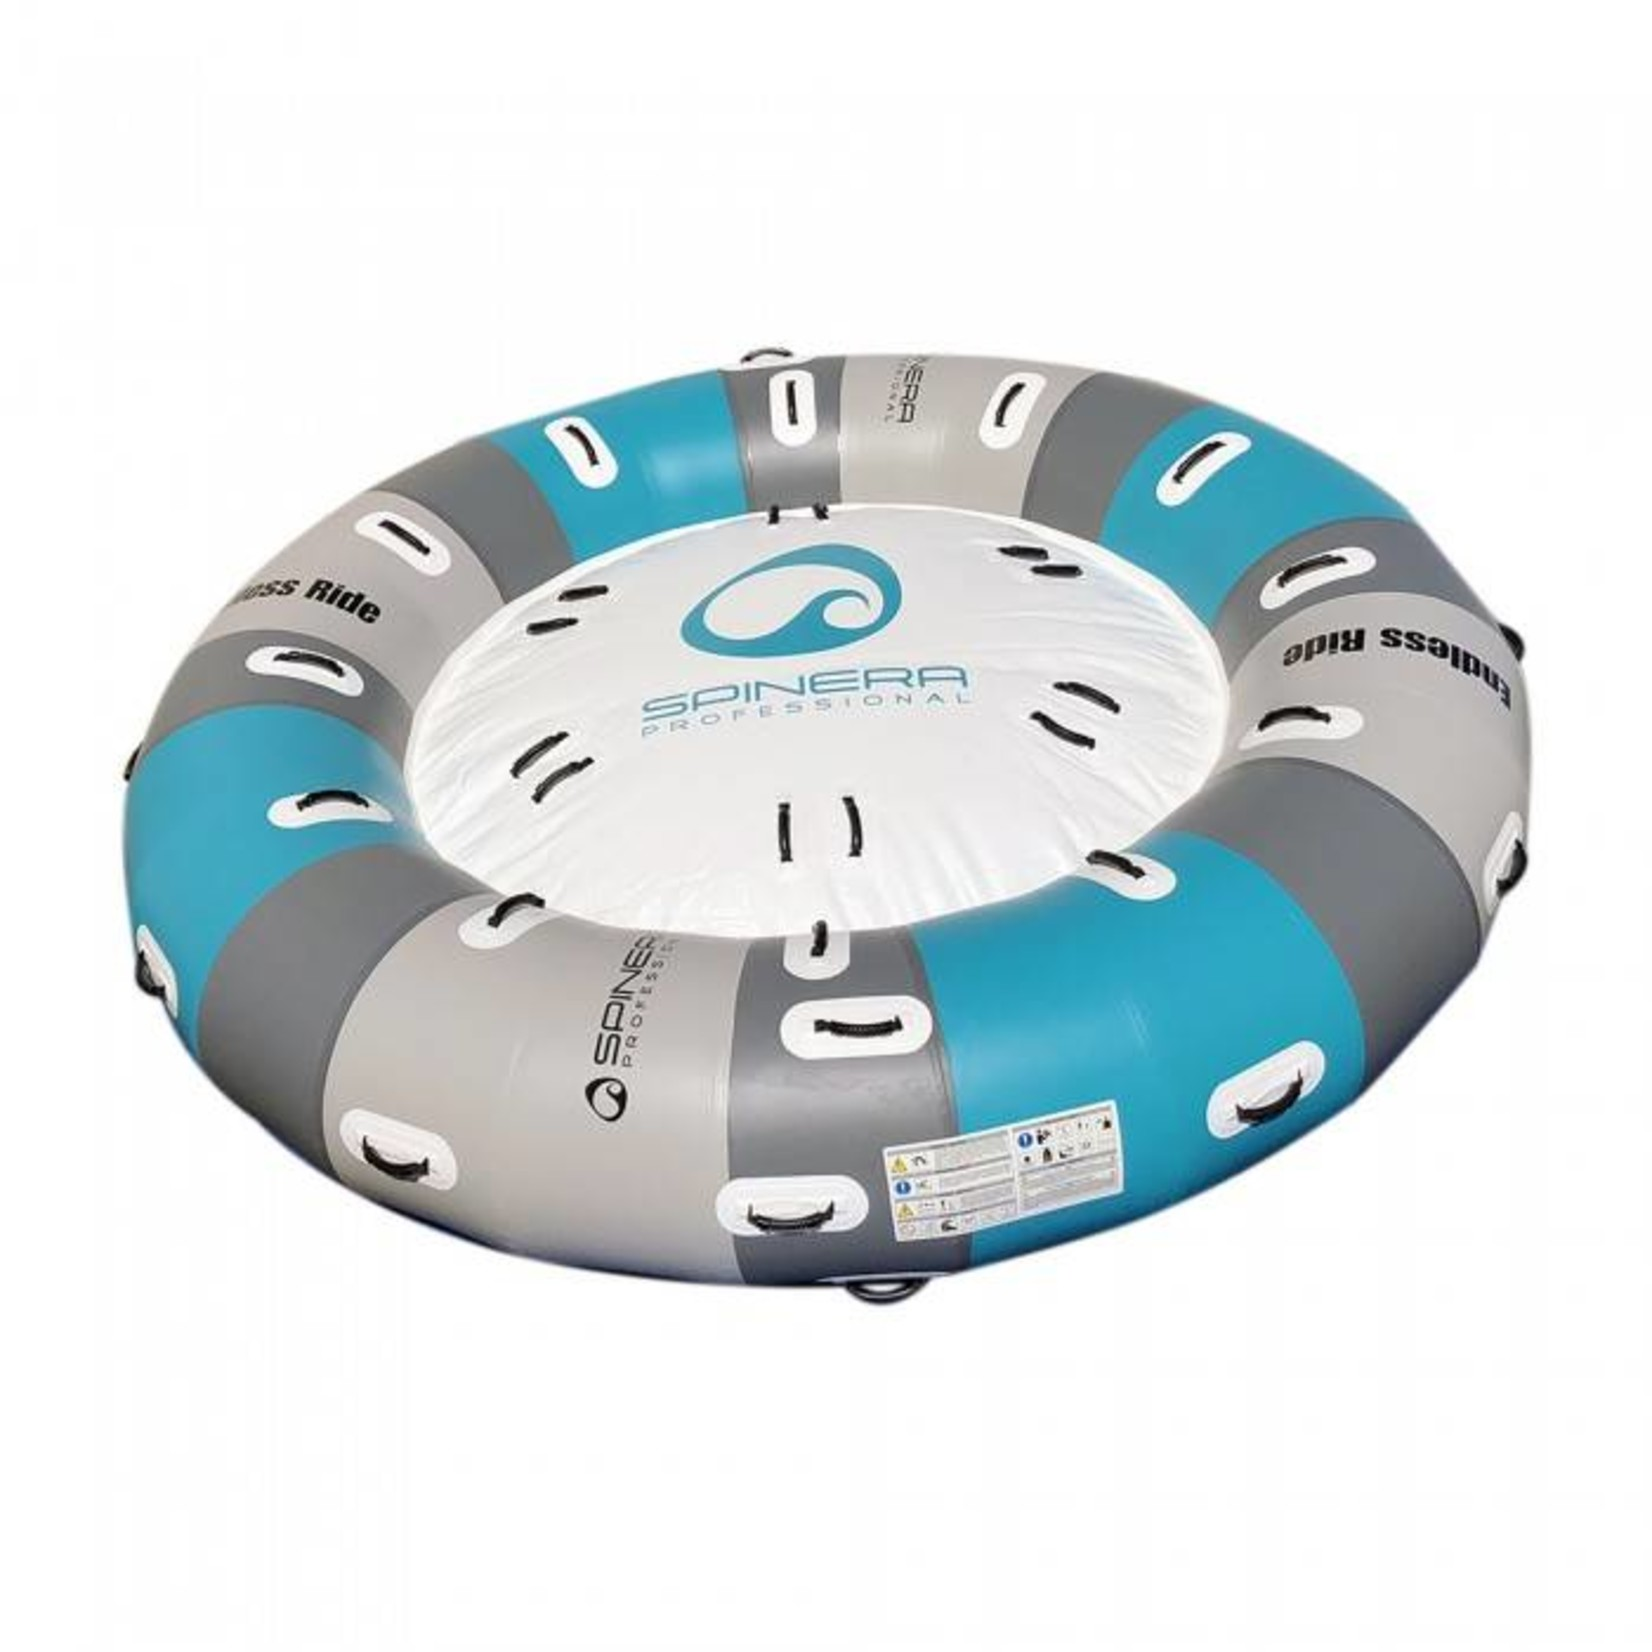 Spinera Endless Ride Professional - Roterende band